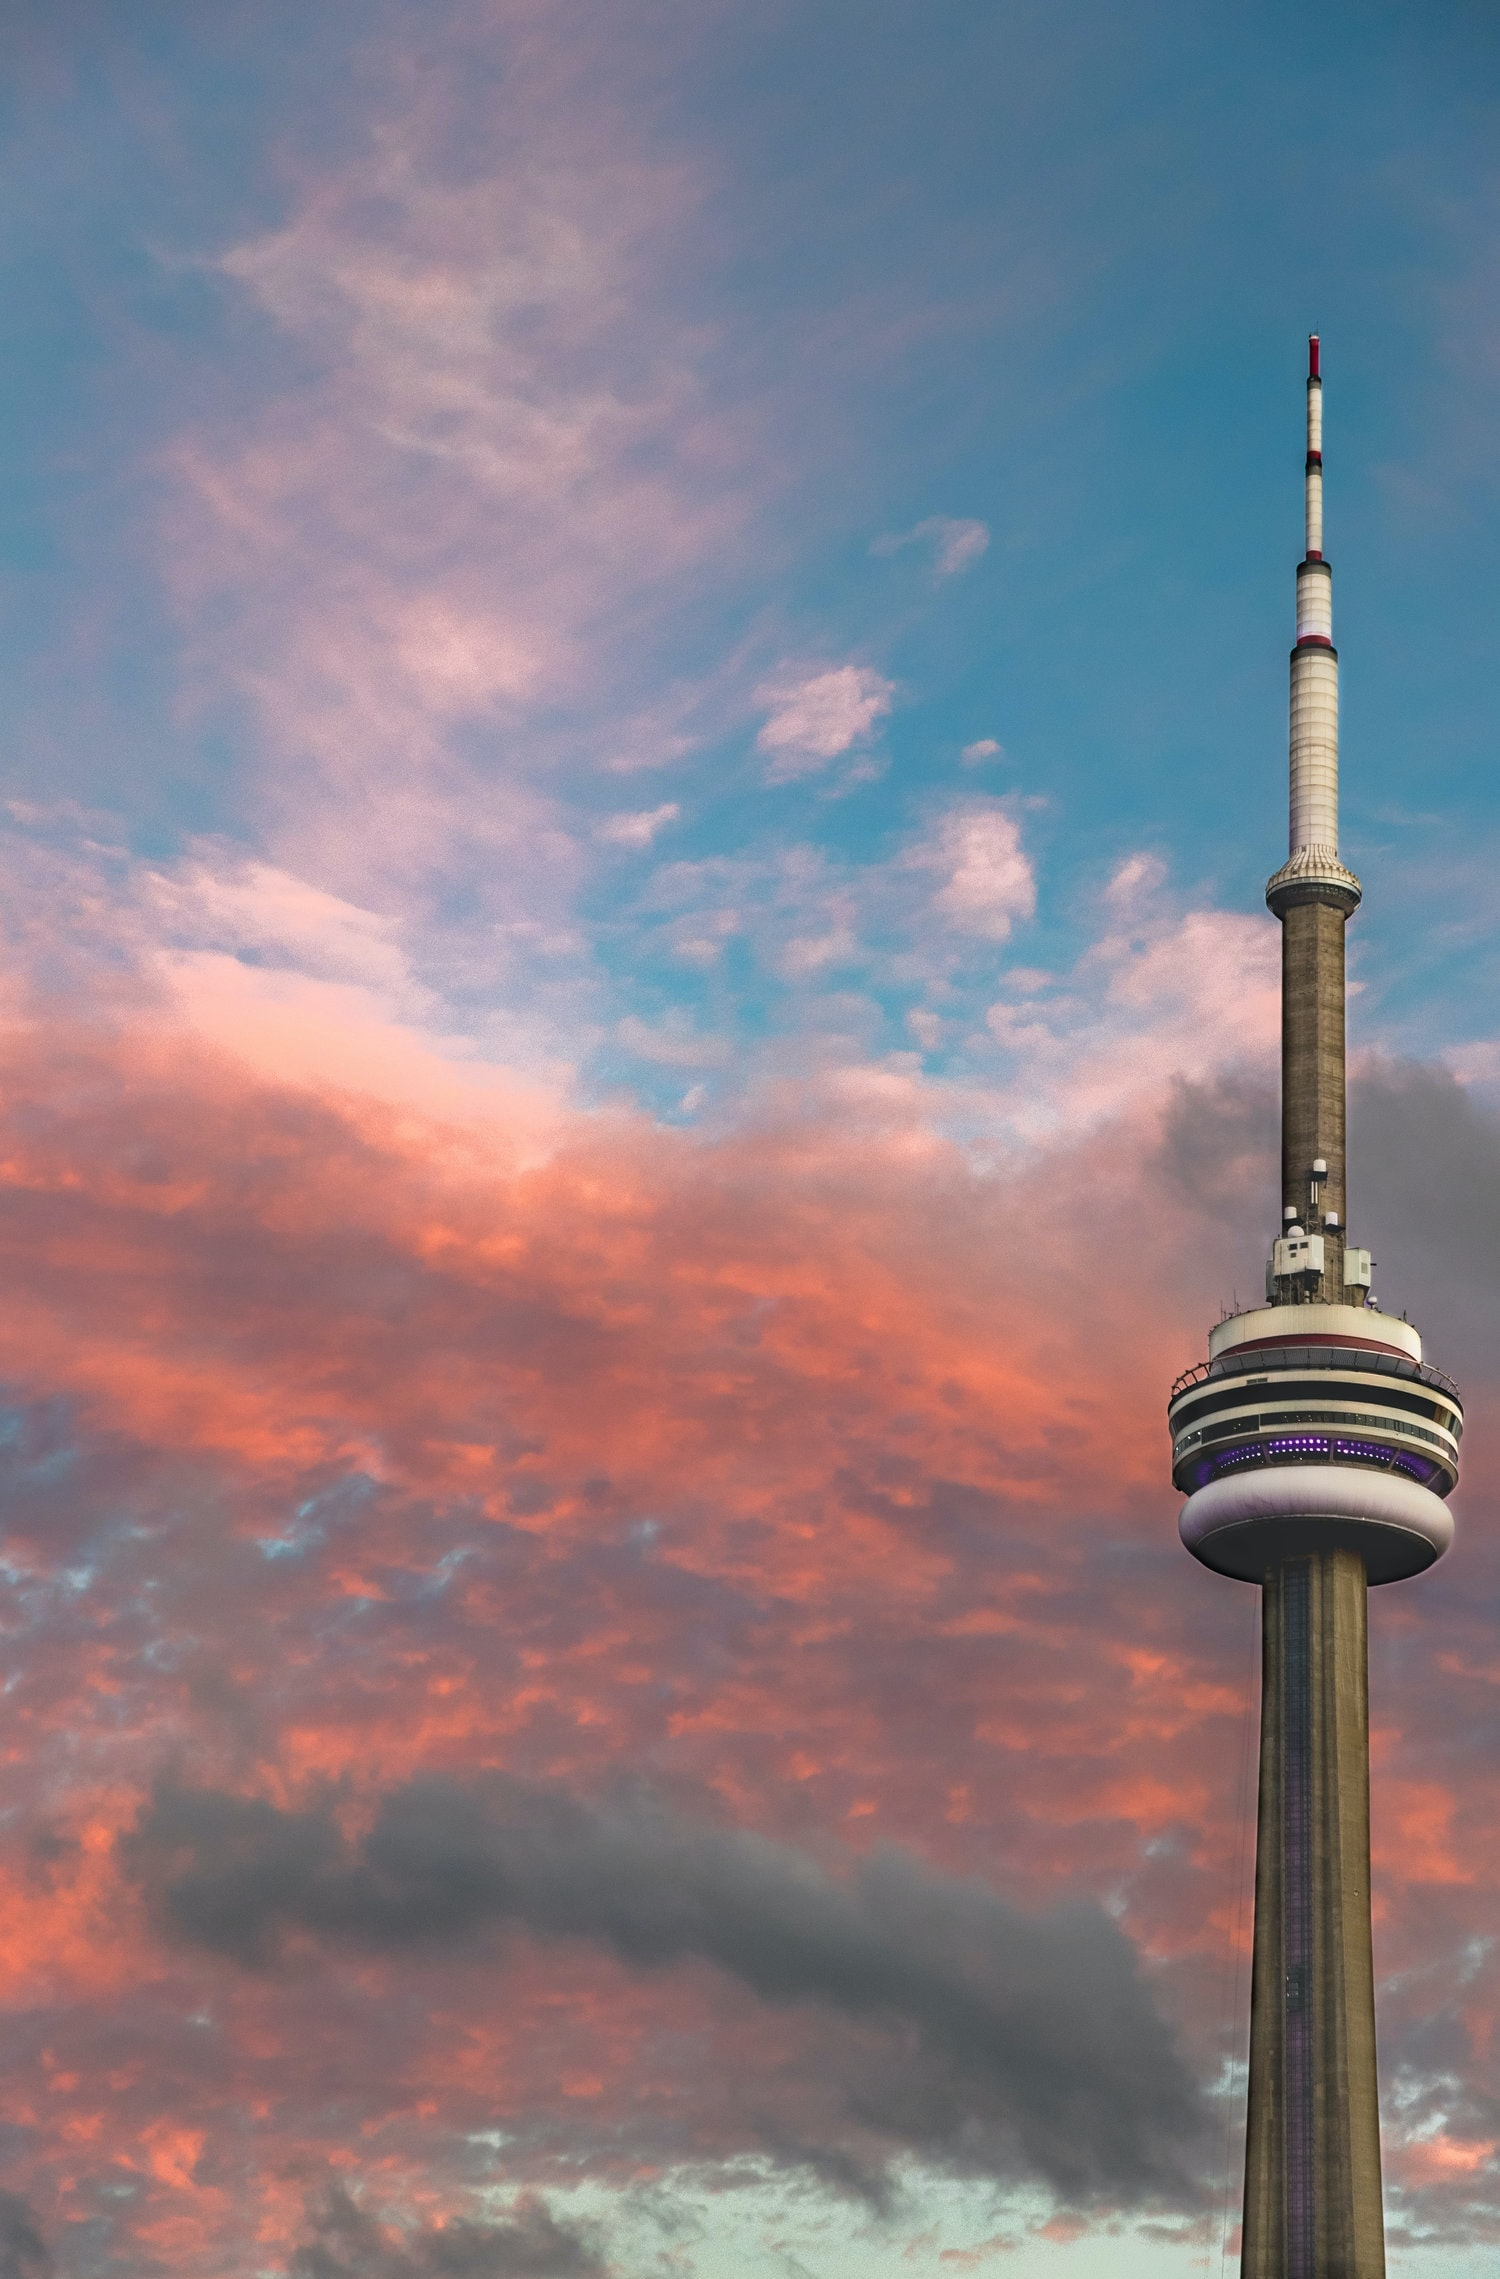 CN Tower under red and gray clouds